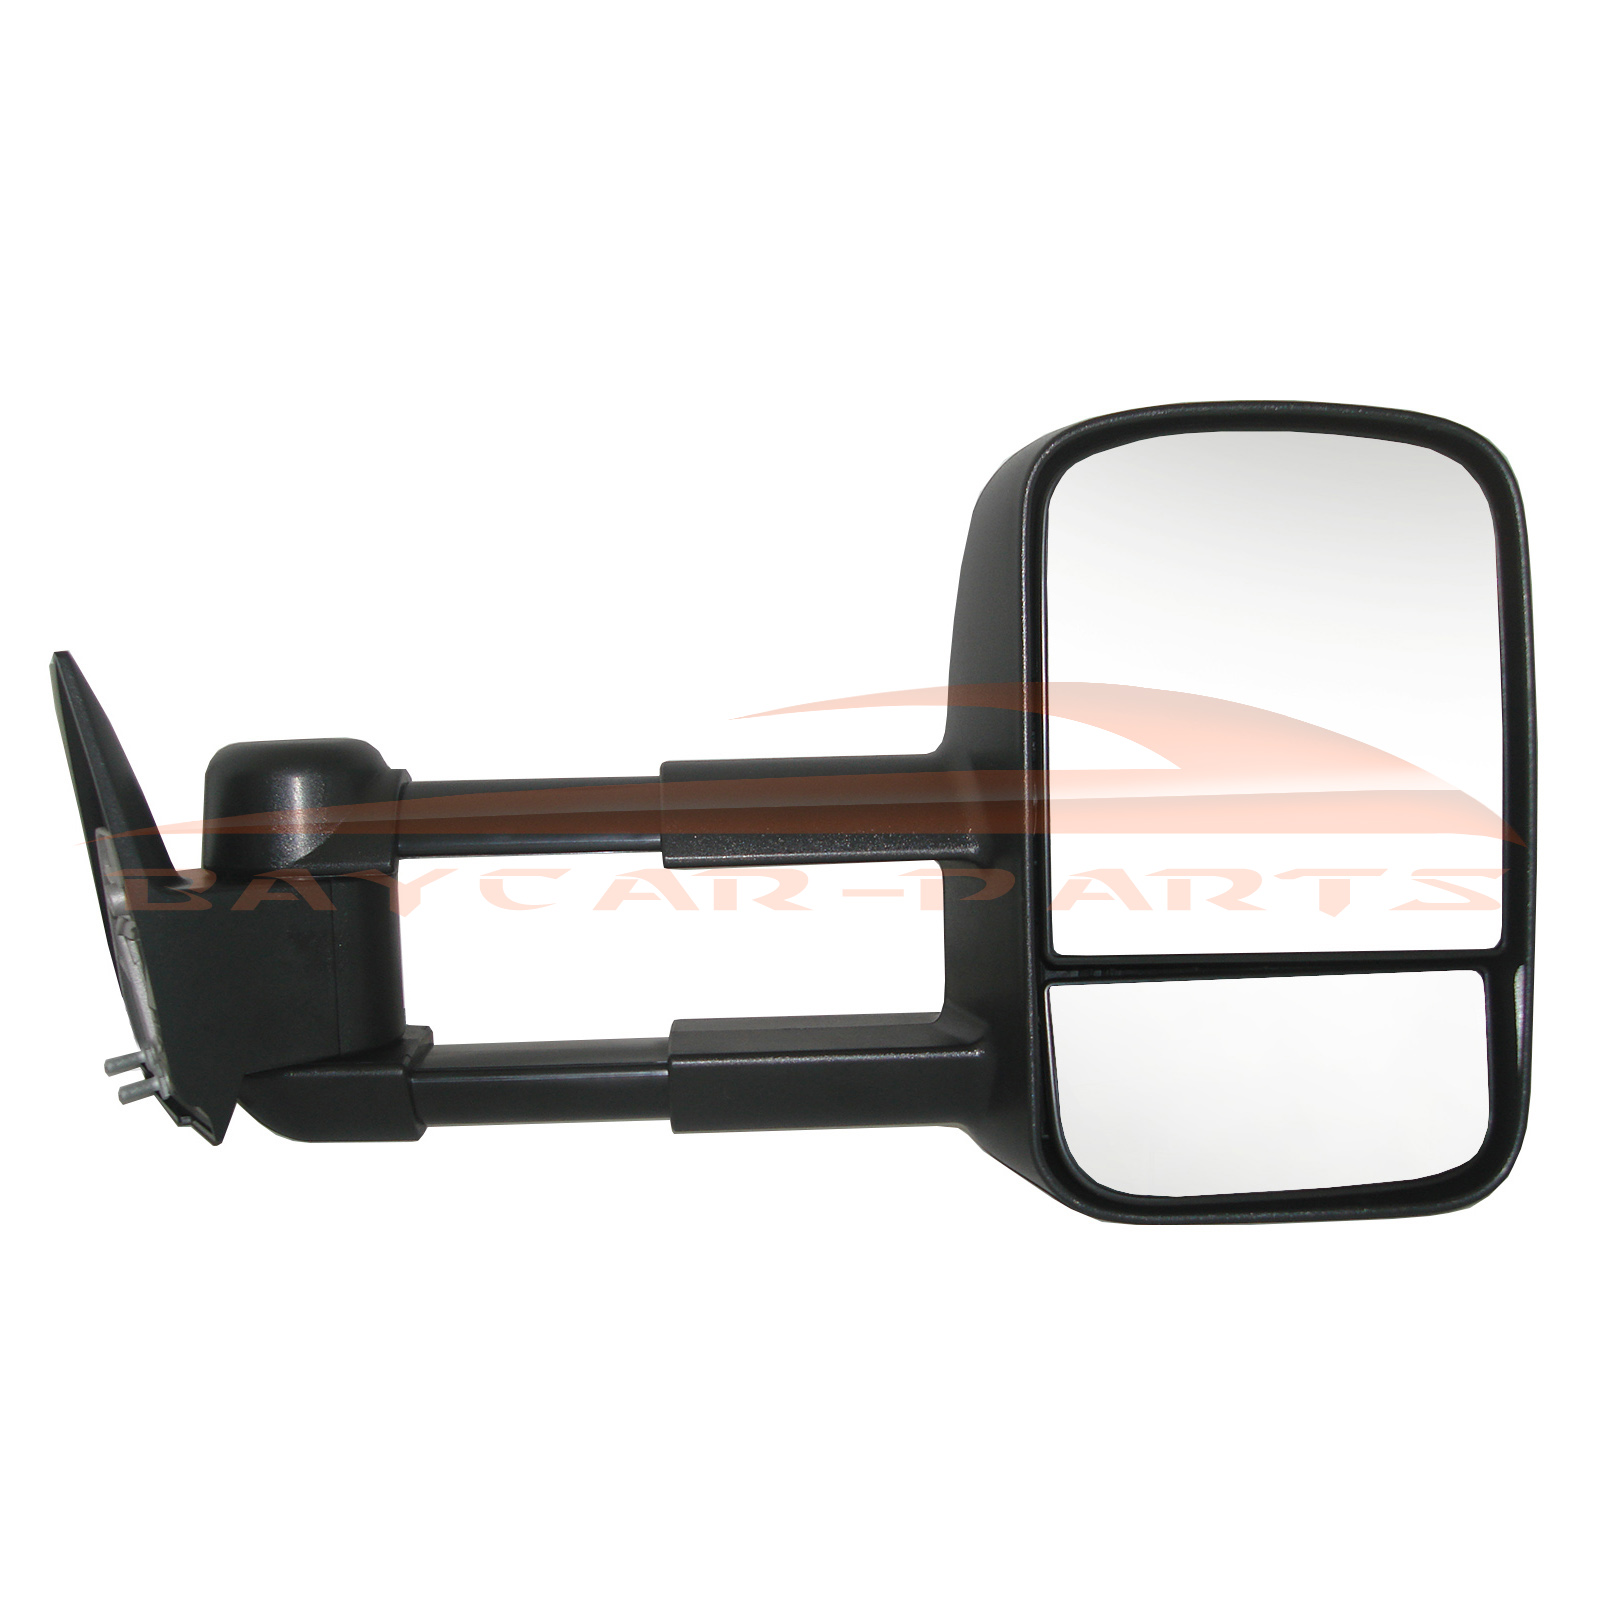 for 88 98 chevy gmc 1500 2500 3500 towing mirrors manual side mirror truck pair ebay. Black Bedroom Furniture Sets. Home Design Ideas